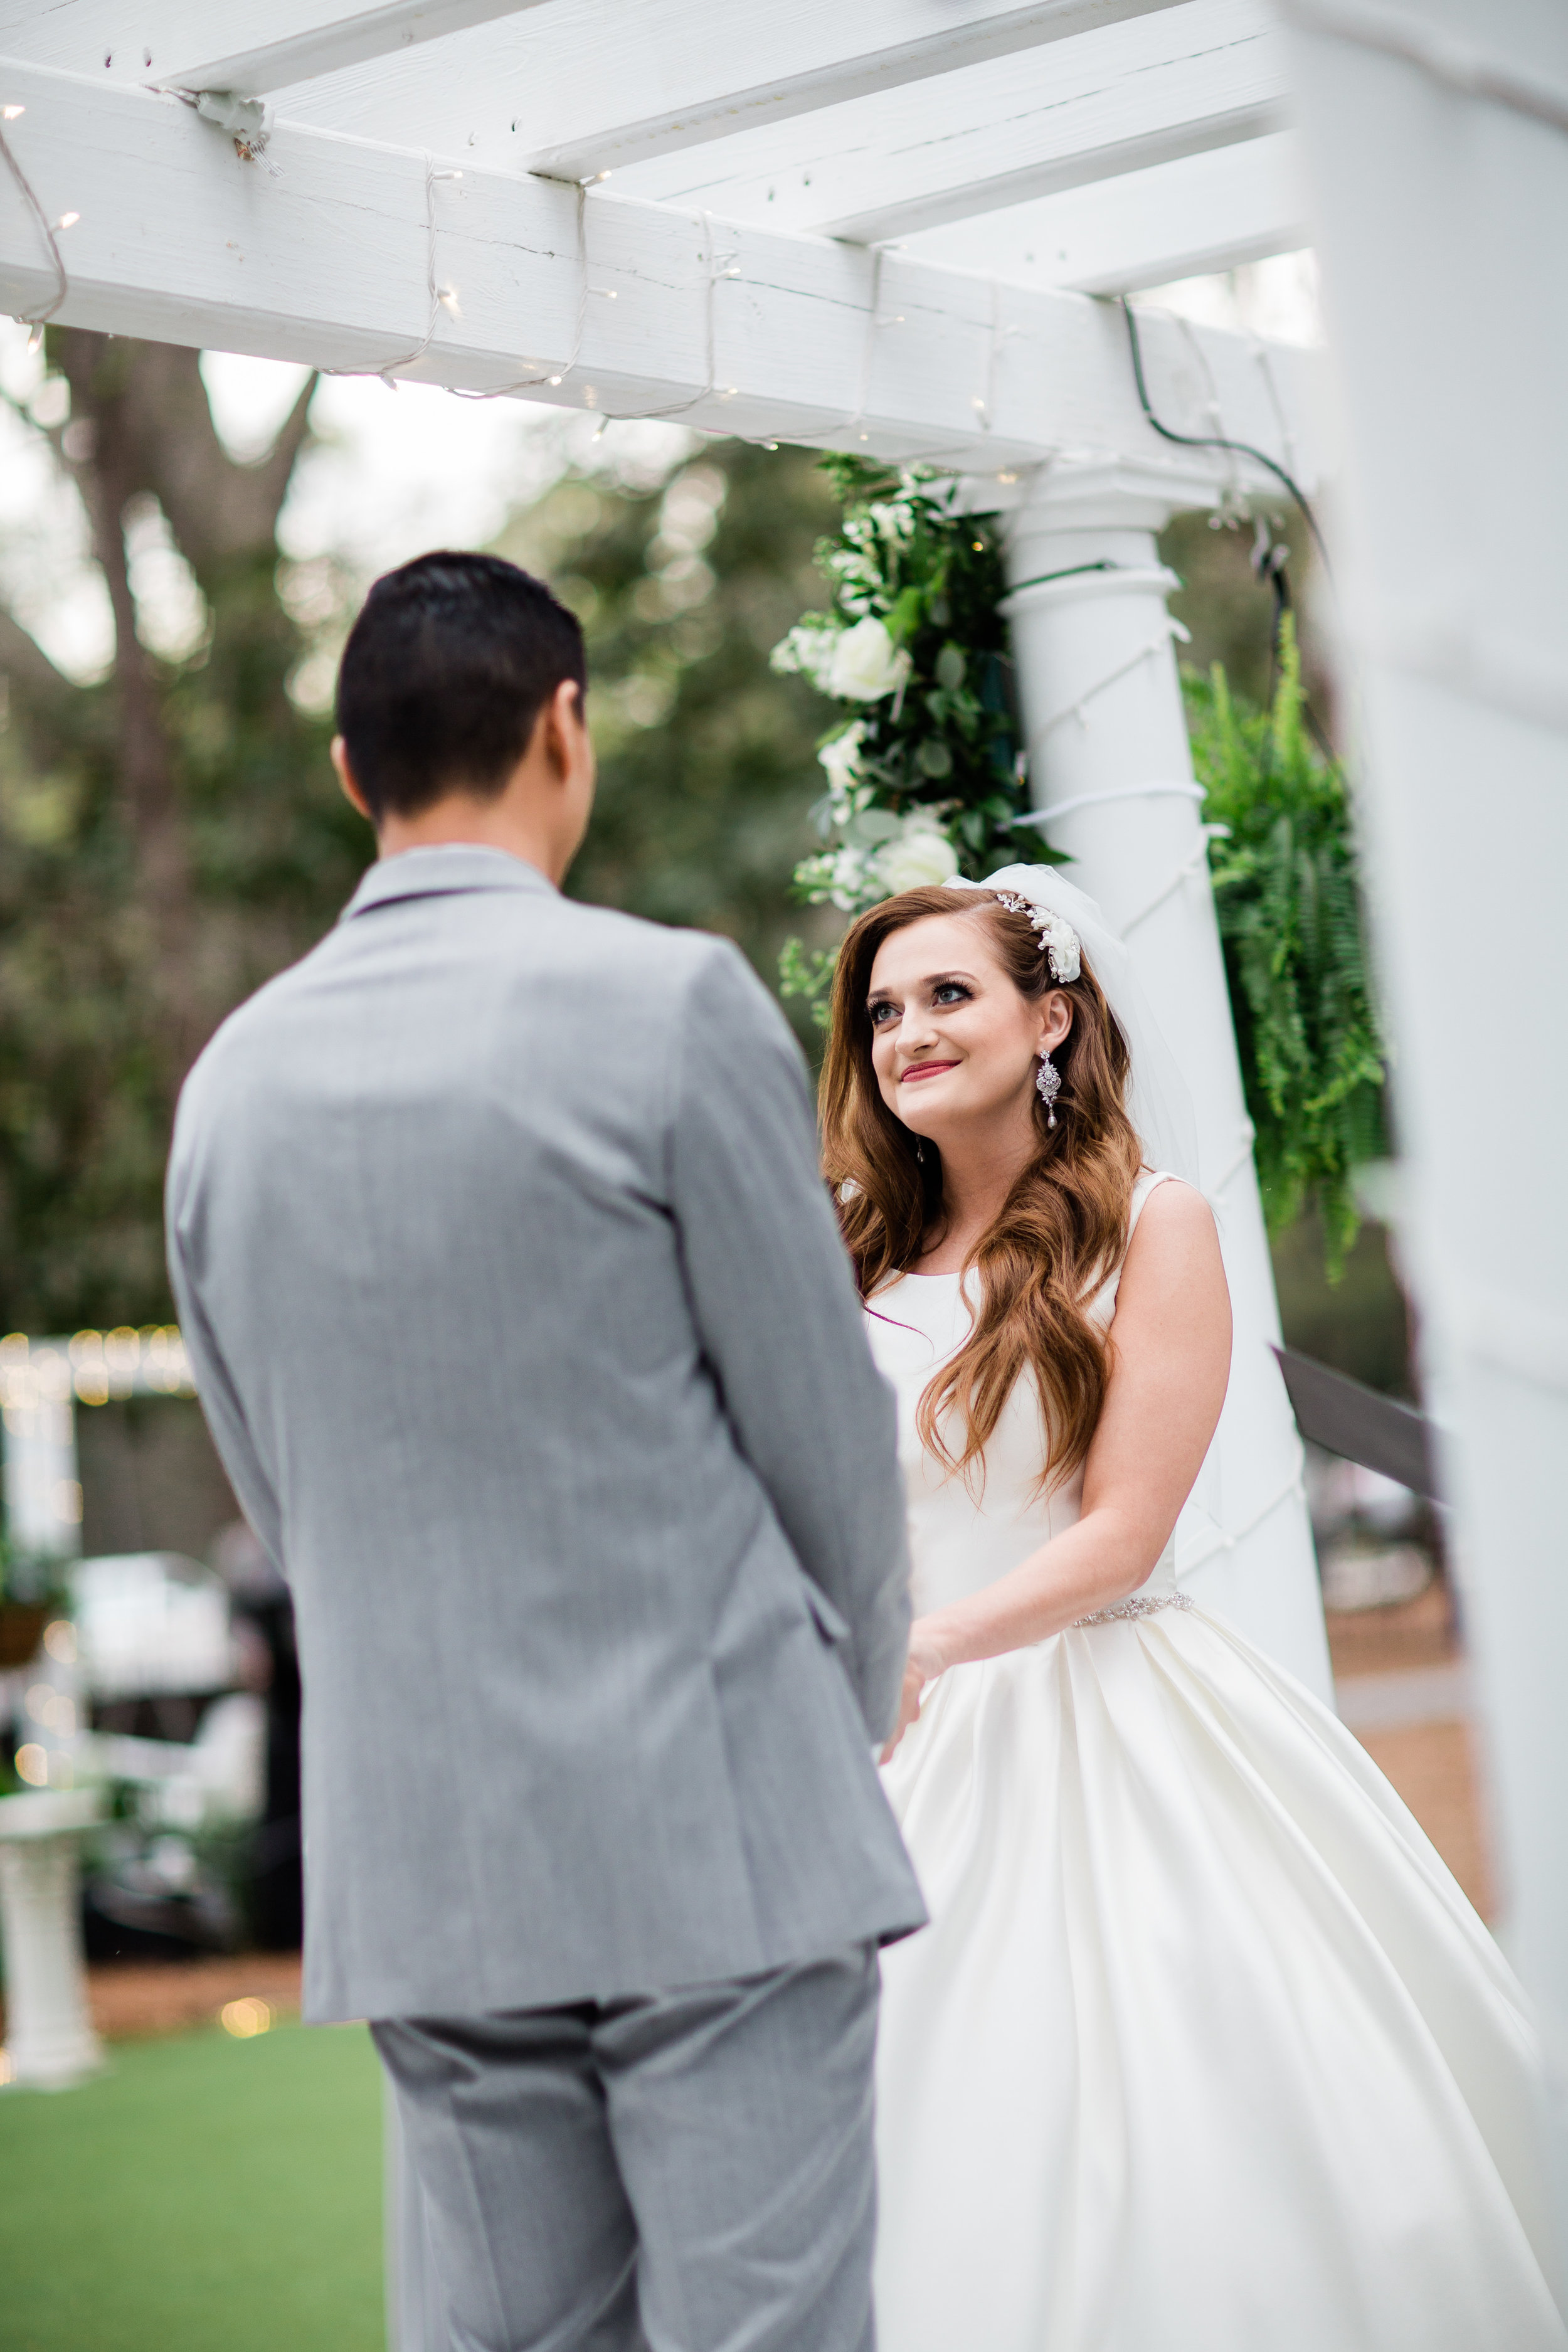 savannah-bridal-shop-i-and-b-bride-dallas-vitor-lindo-photography-verity-gown-by-maggie-sottero-savannah-wedding-gown-savannah-wedding-dress-mackey-house-wedding-2.jpg